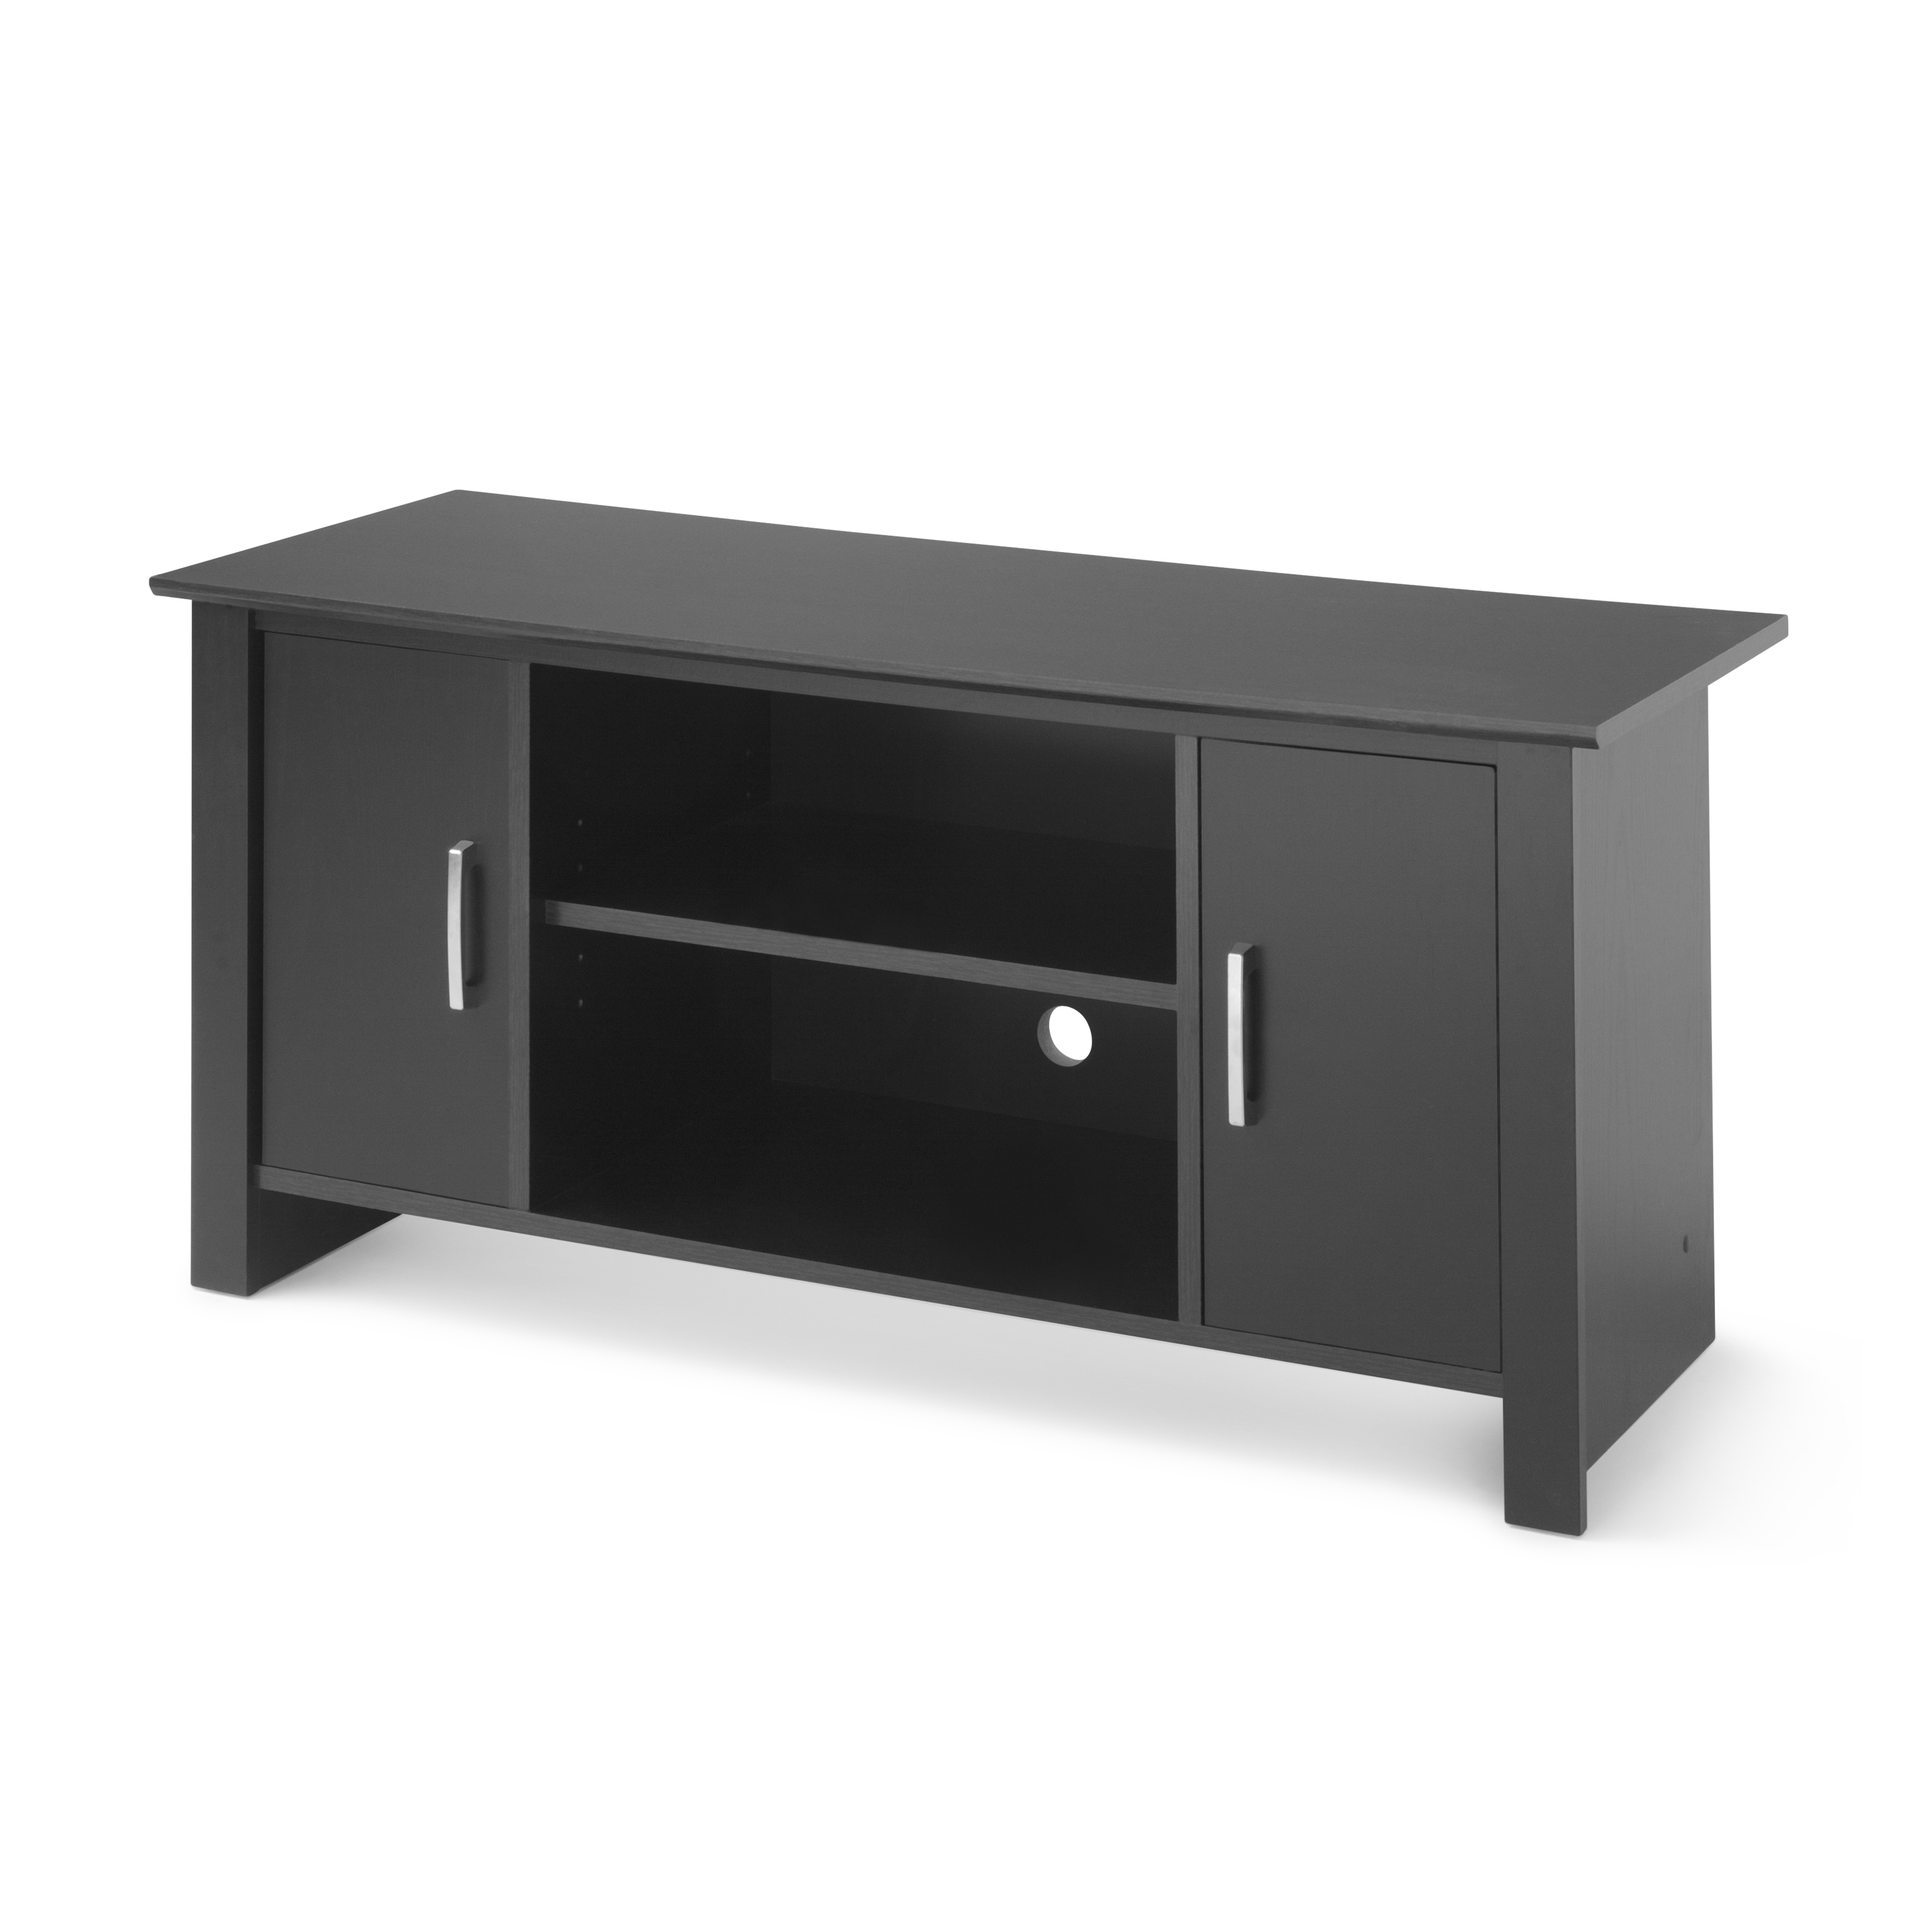 tall tv stands for bedroom rh walmart com TV Stand with Storage Beach Bedroom Furniture